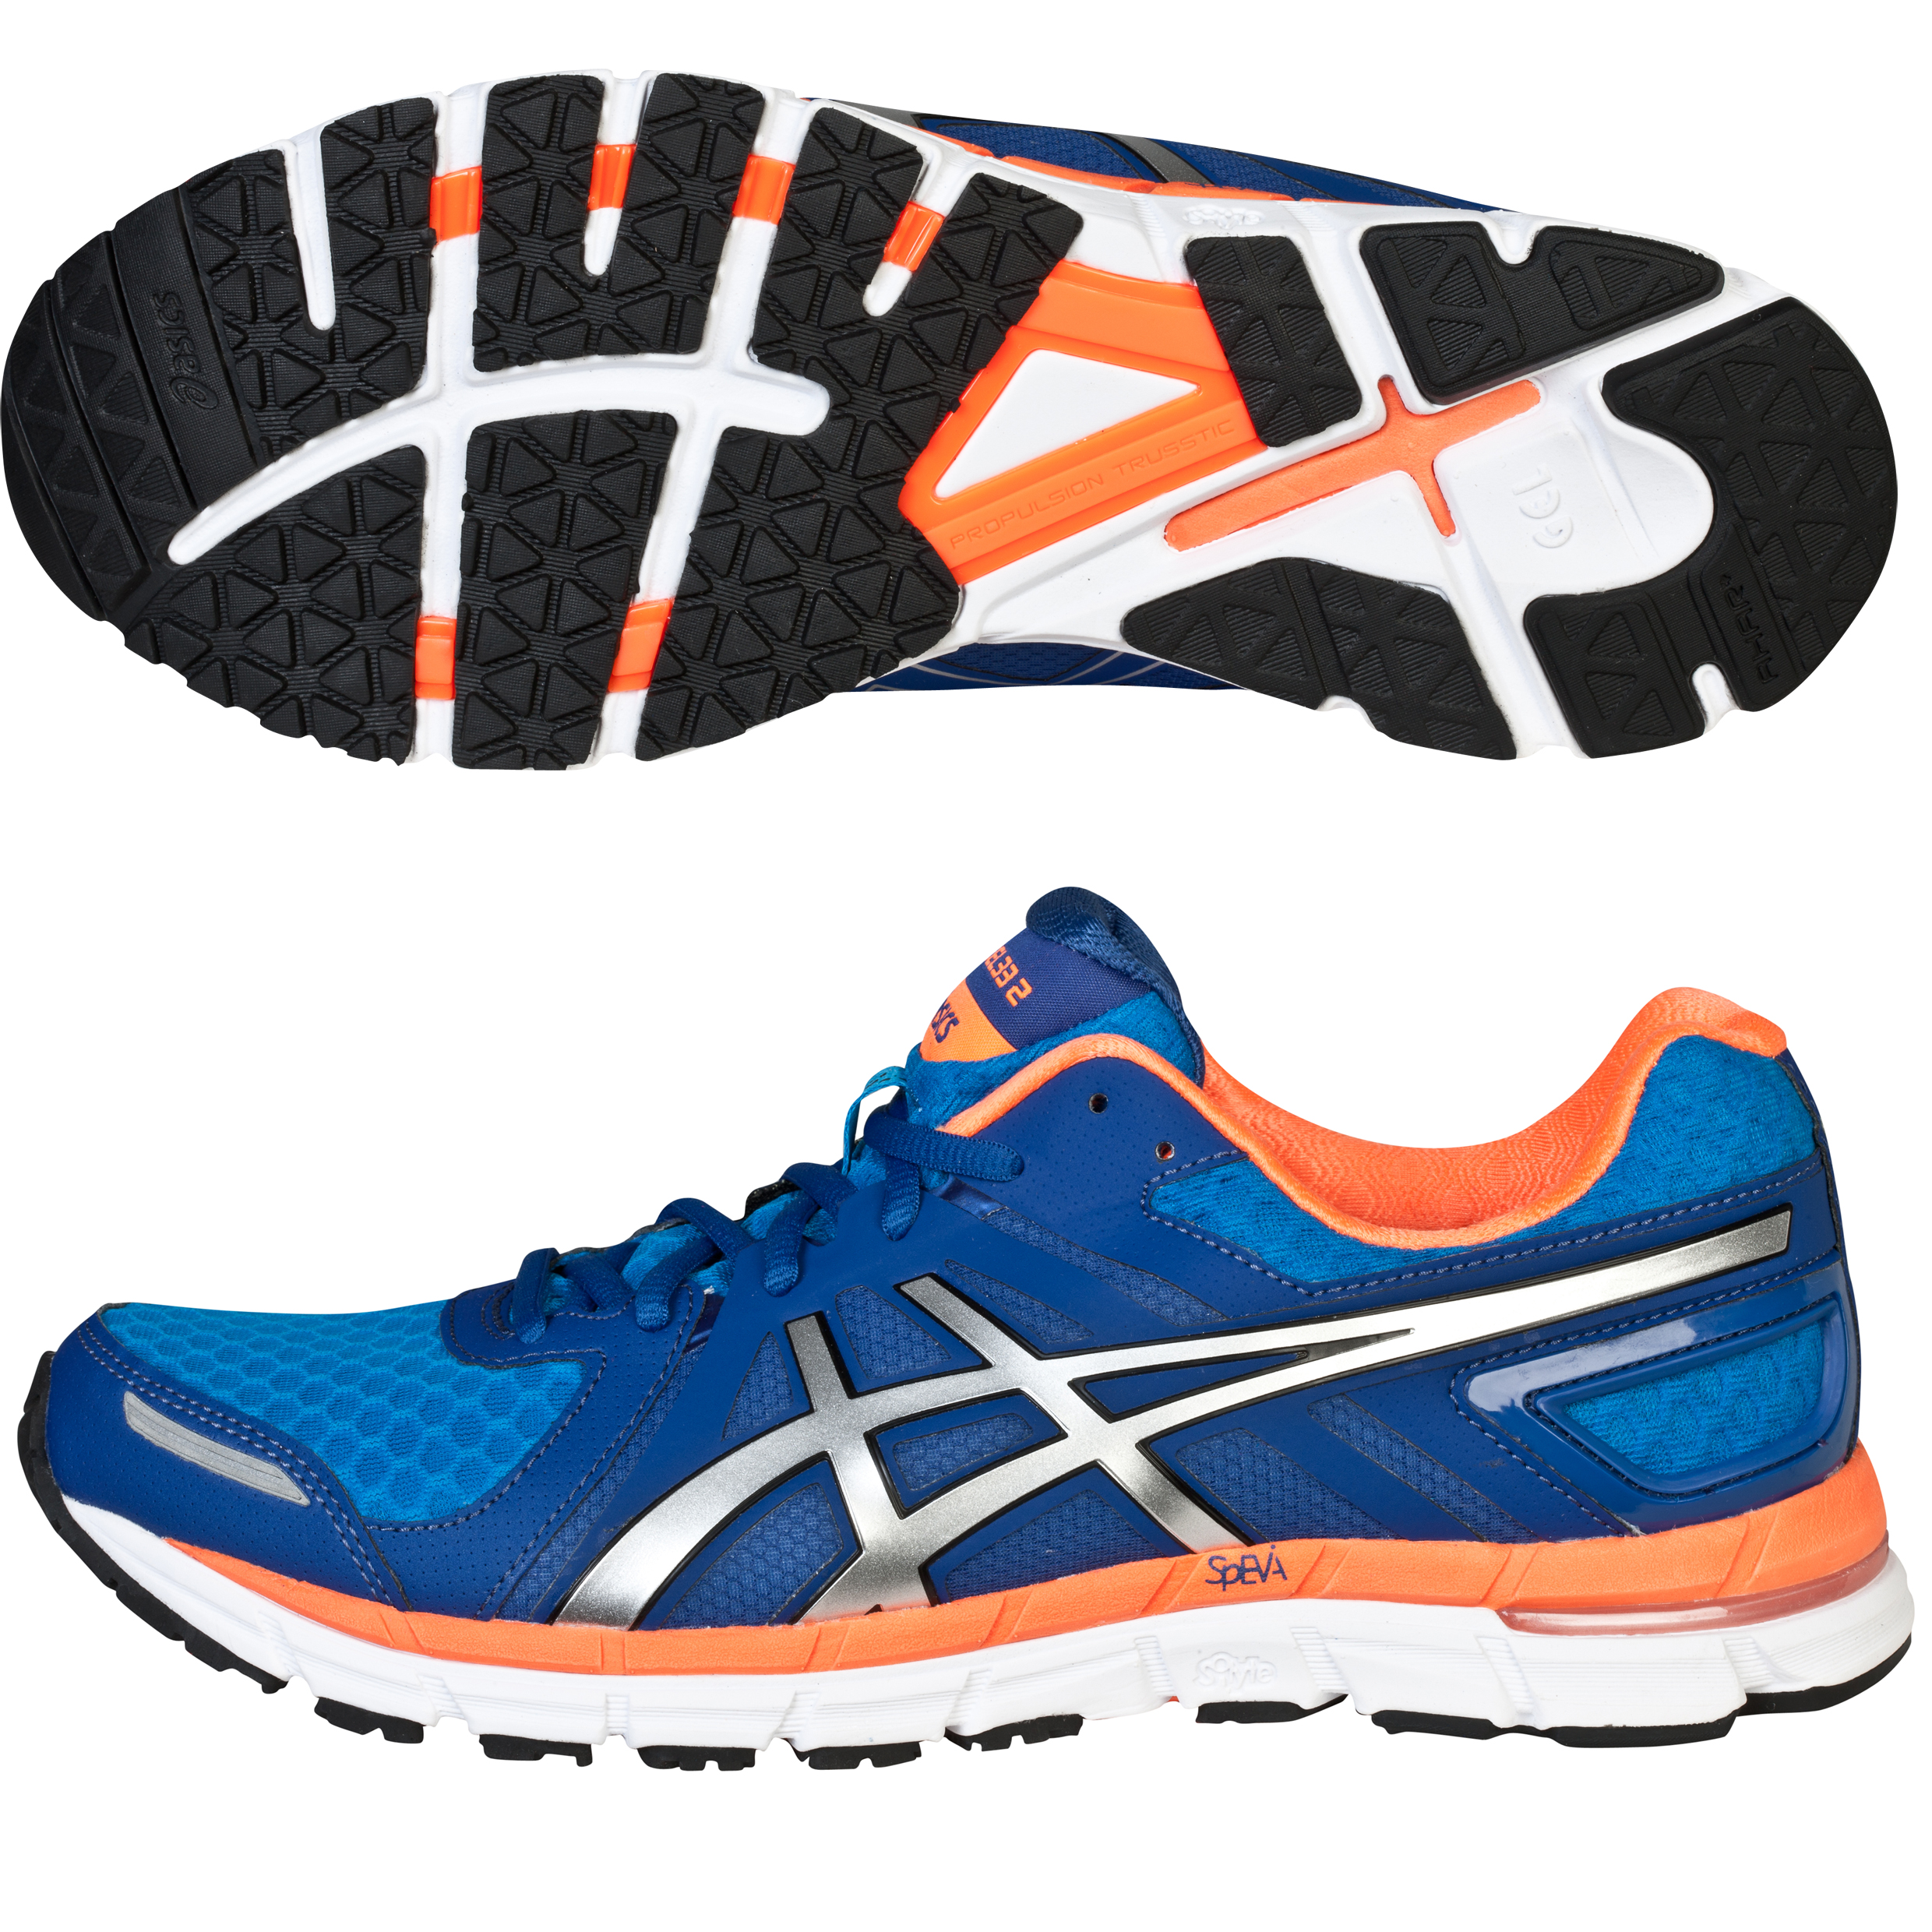 Asics Gel-Excel33 2 Trainer - Sapphire/Lightning/Neon Orange Blue